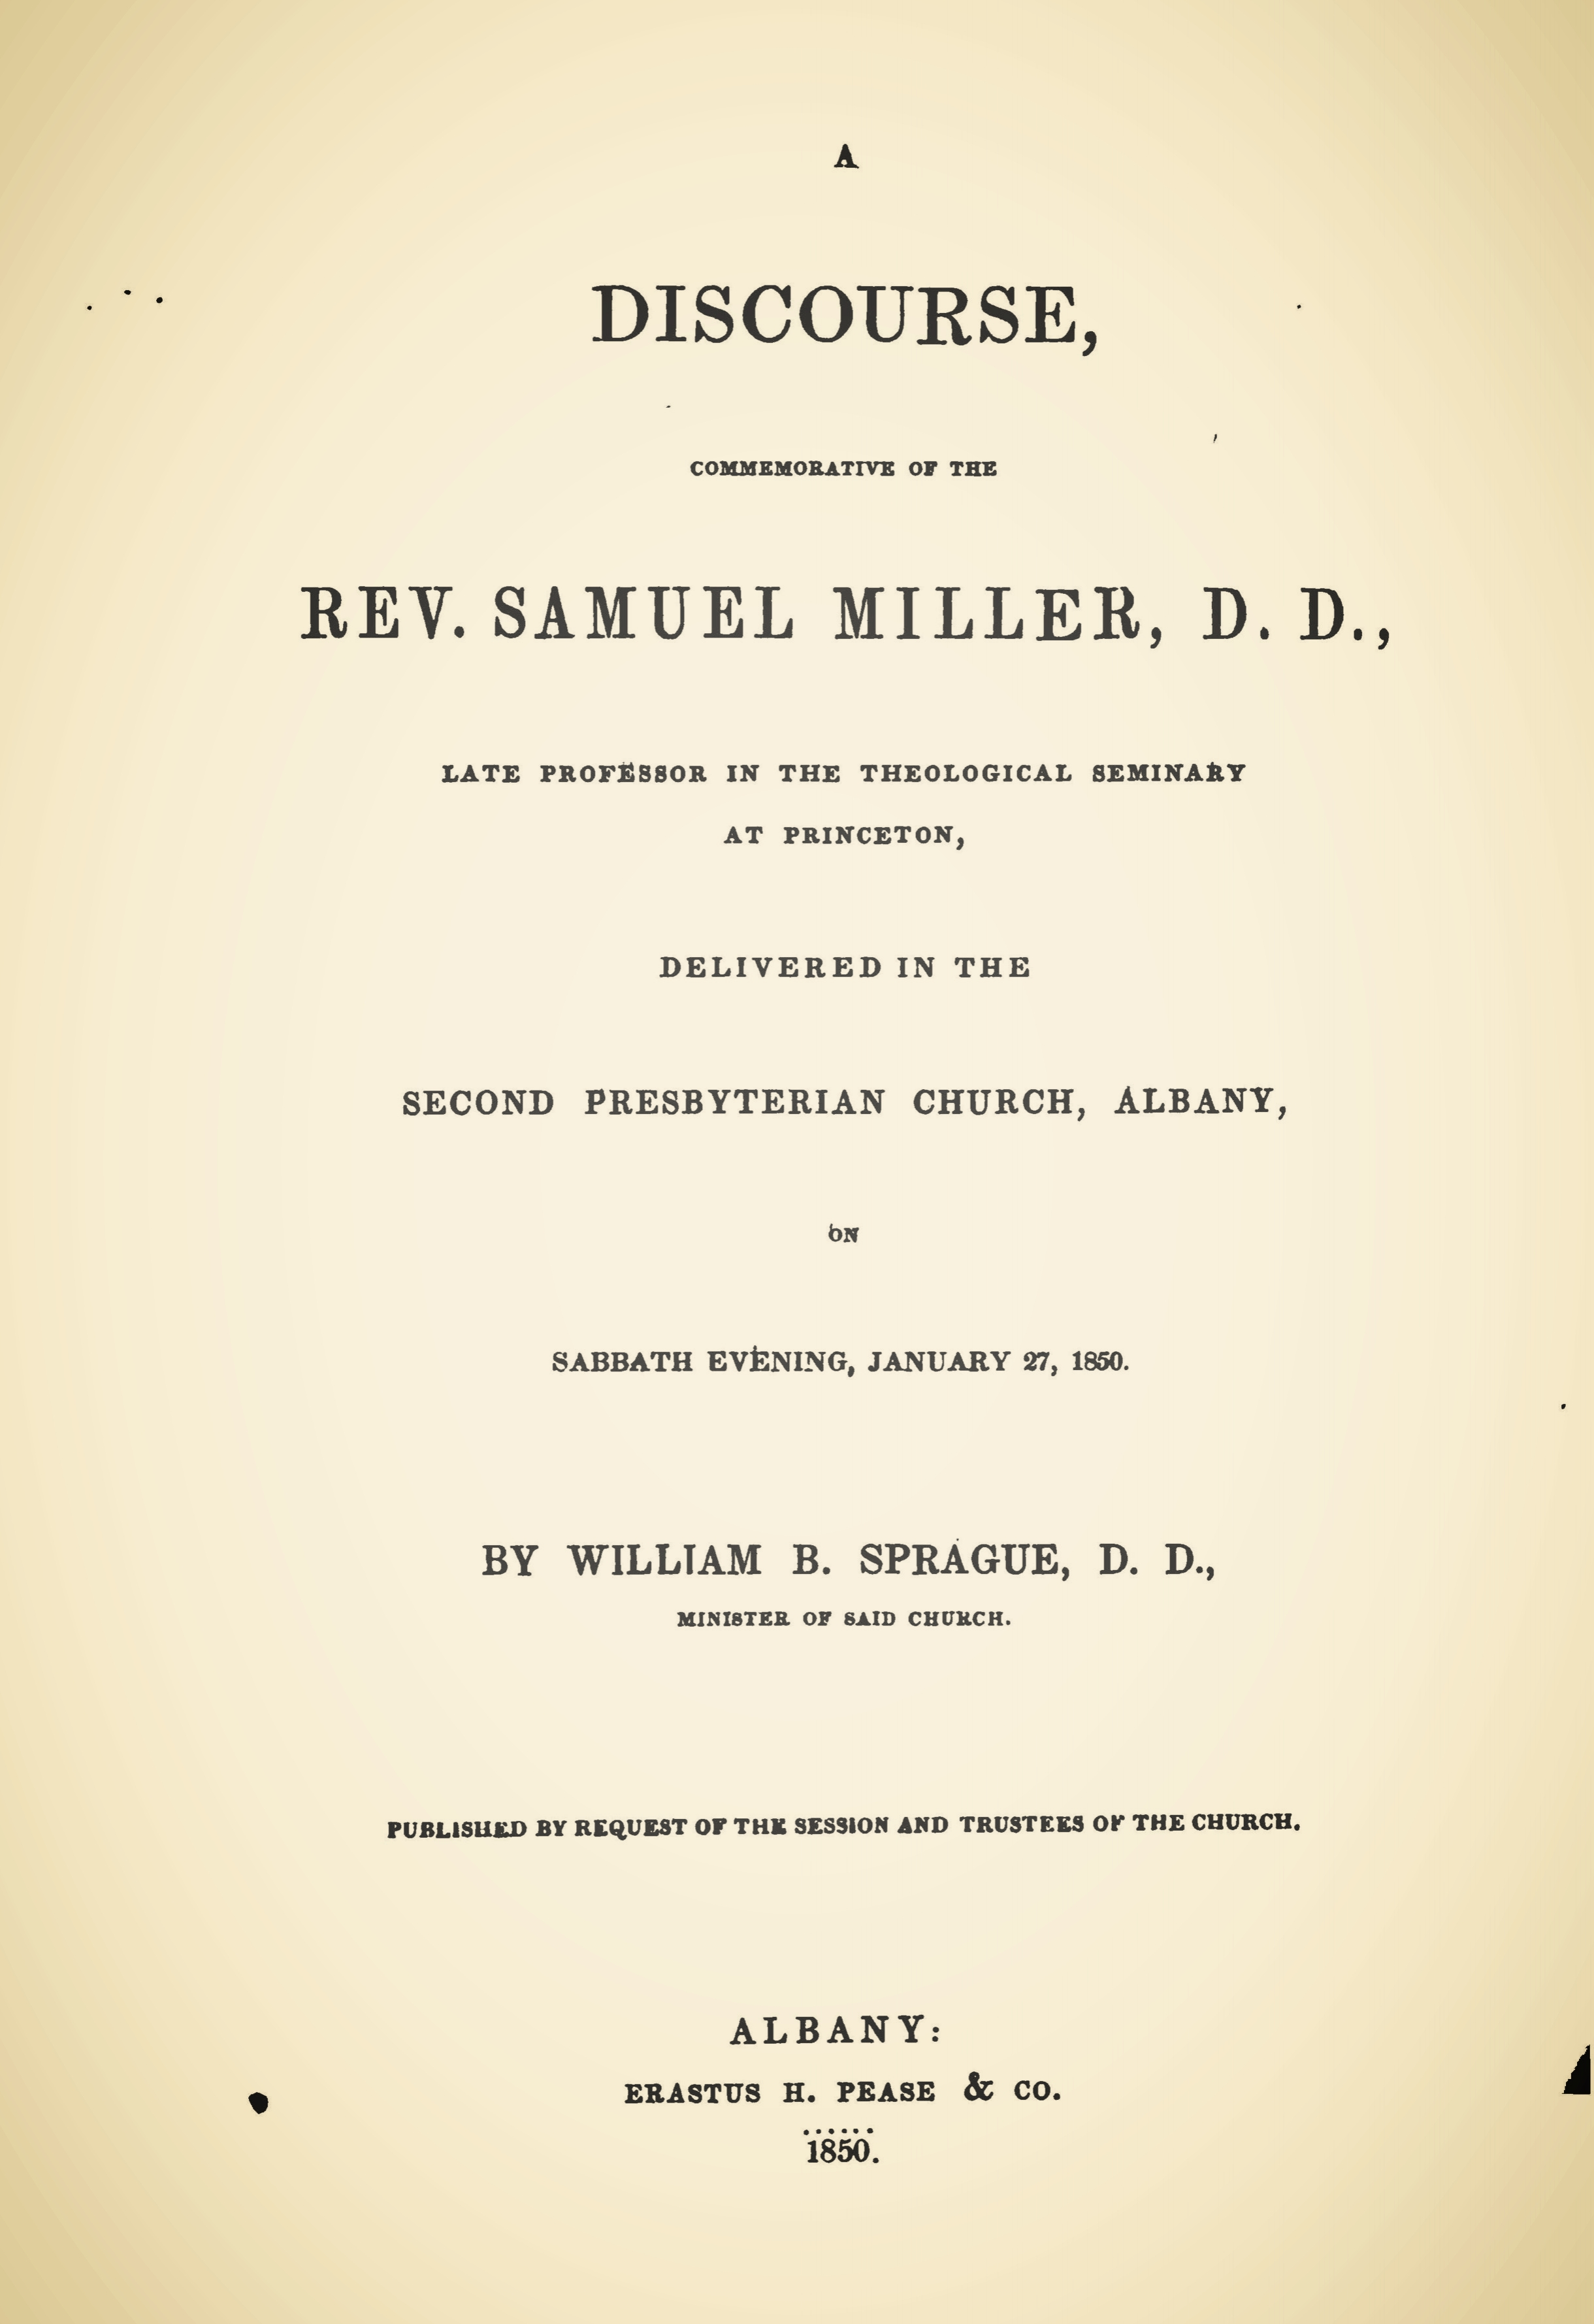 Sprague, William Buell, A Discourse Commemorative of the Rev. Samuel Miller Title Page.jpg